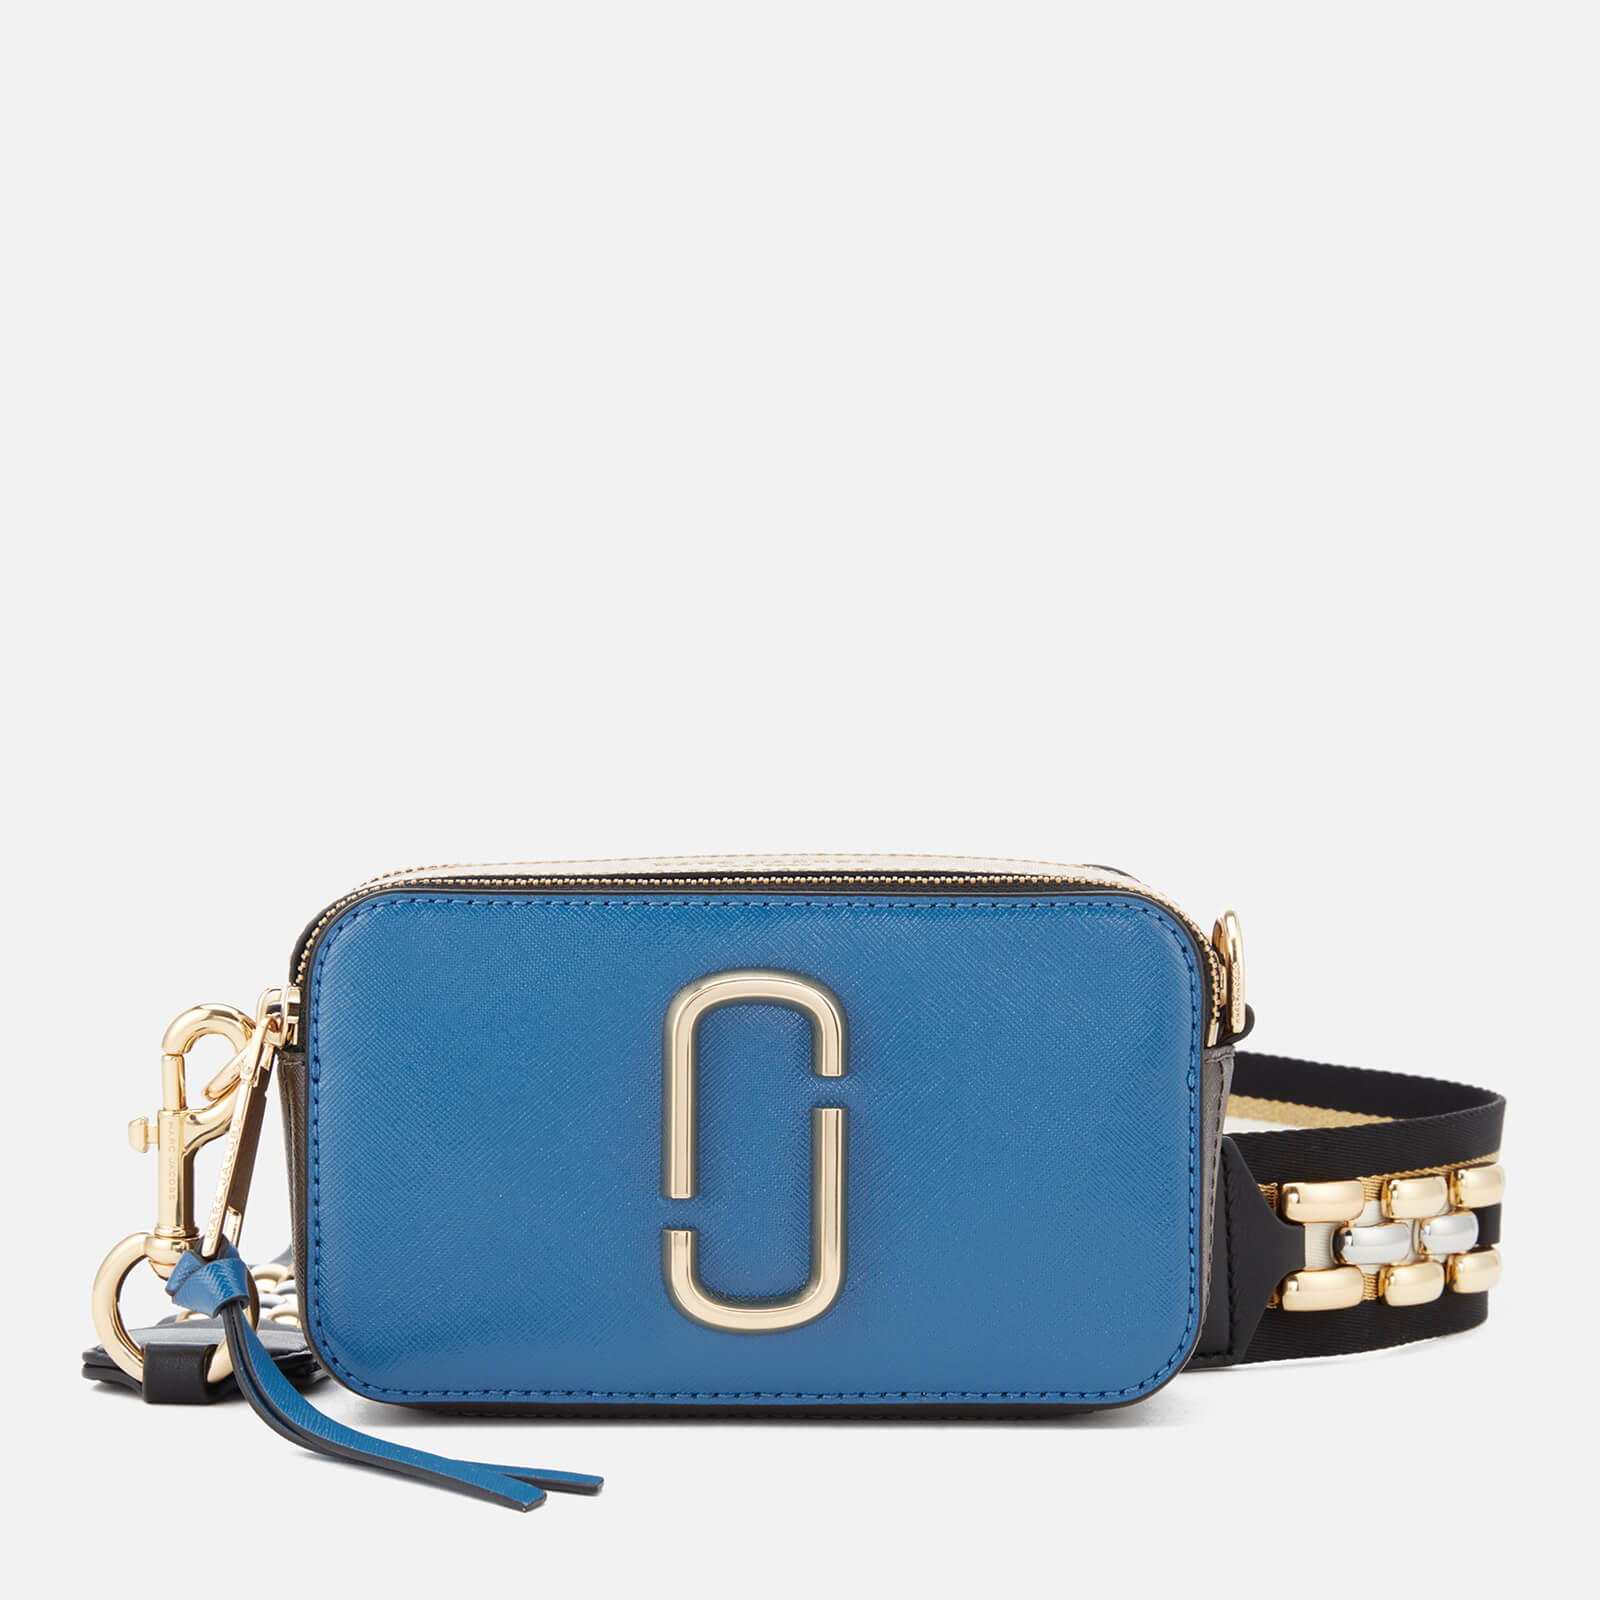 dc8836082f Marc Jacobs Women's Snapshot Cross Body Bag - Vintage Blue/Multi - Free UK  Delivery over £50